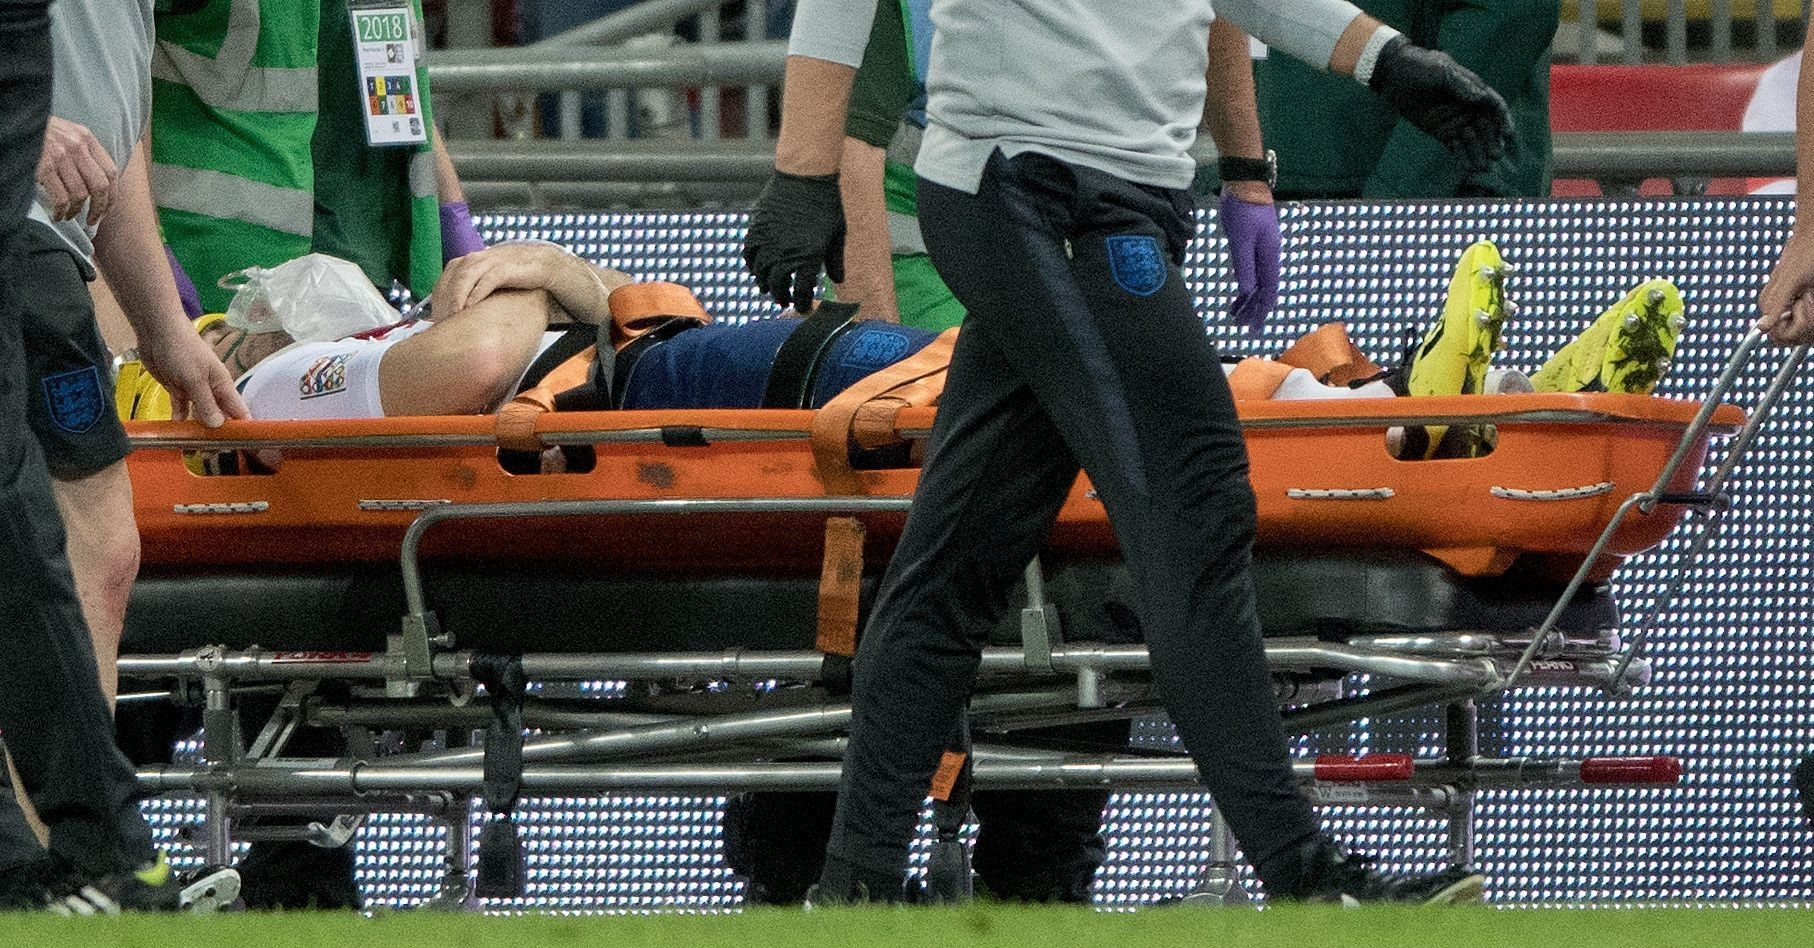 Mandatory Credit: Photo by Sandra Mailer/REX (9874859av) Luke Shaw is taken off the pitch with oxygen after his sustaining a head injury from a clash with Dani Carvajal England v Spain, UEFA Nations League Group A4, International Football, Wembley Stadium, London, UK - 08 Sep 2018